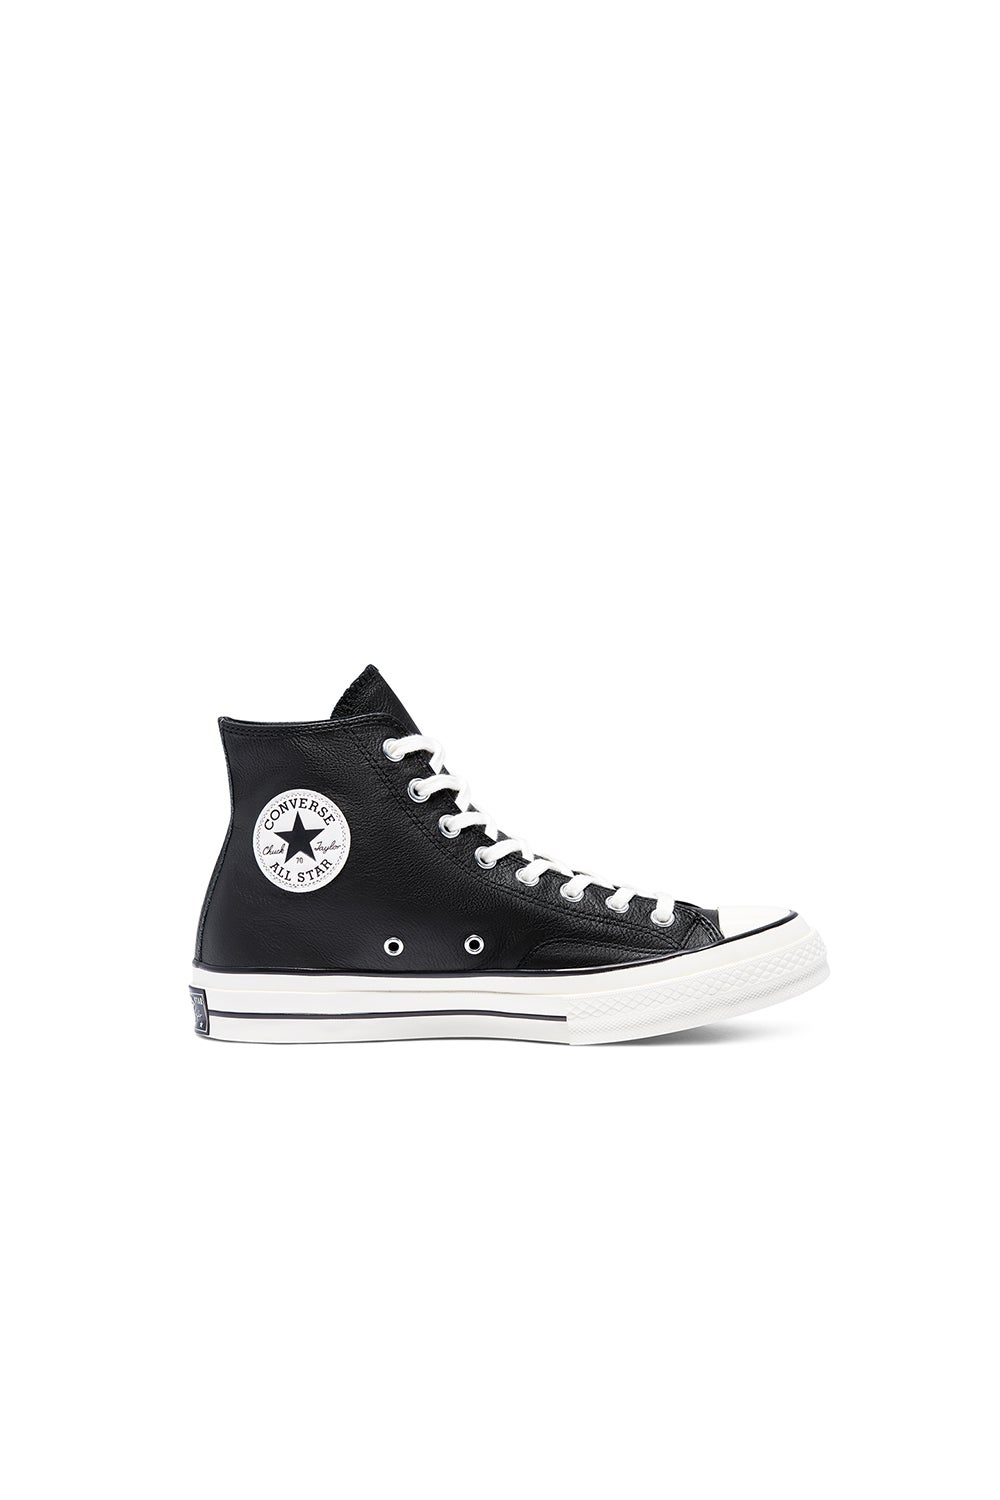 Converse Chuck Taylor 70 Leather Hi Top Black/Egret